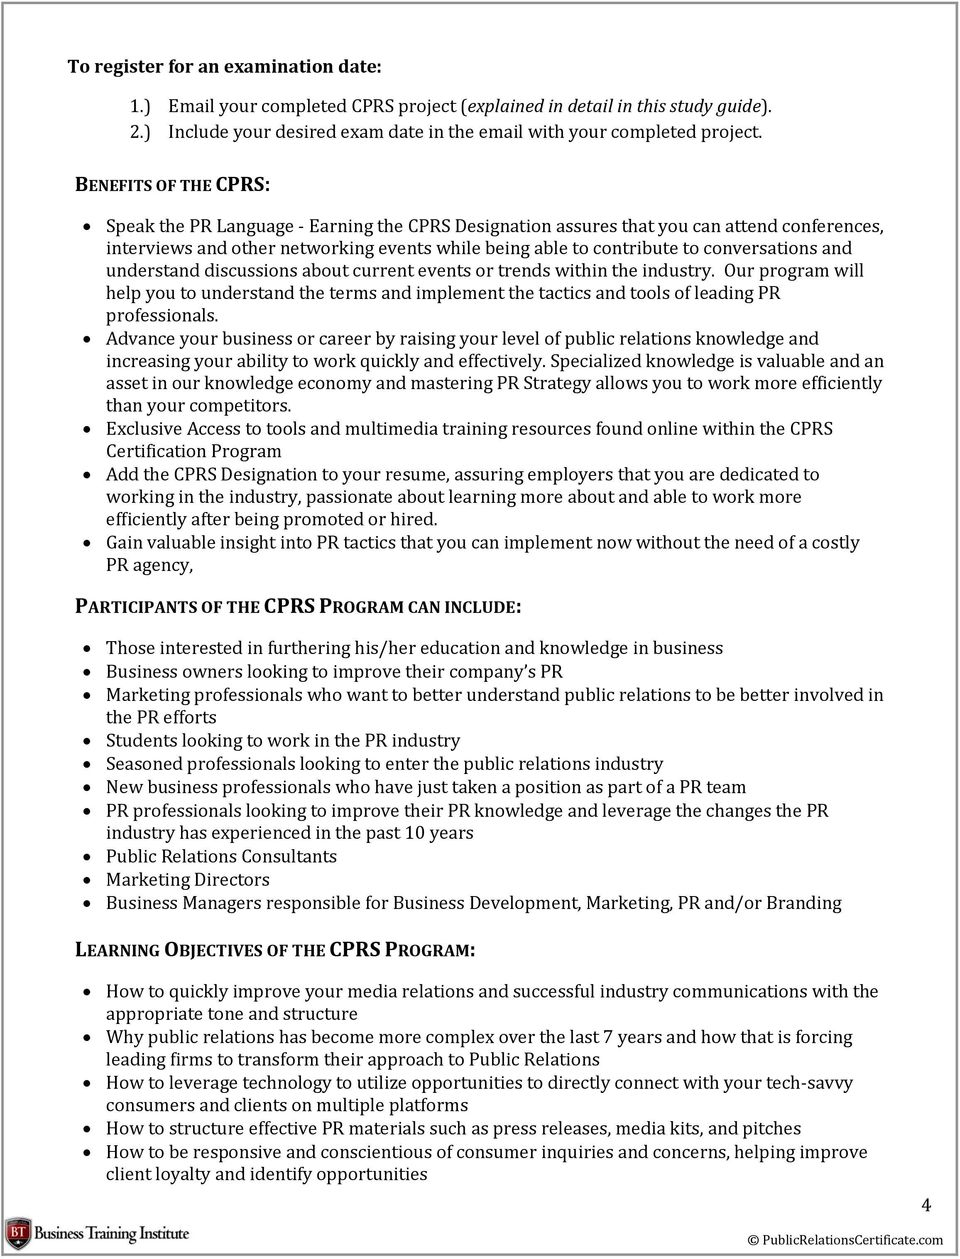 CERTIFIED PUBLIC RELATIONS SPECIALIST (CPRS) STUDY GUIDE - PDF